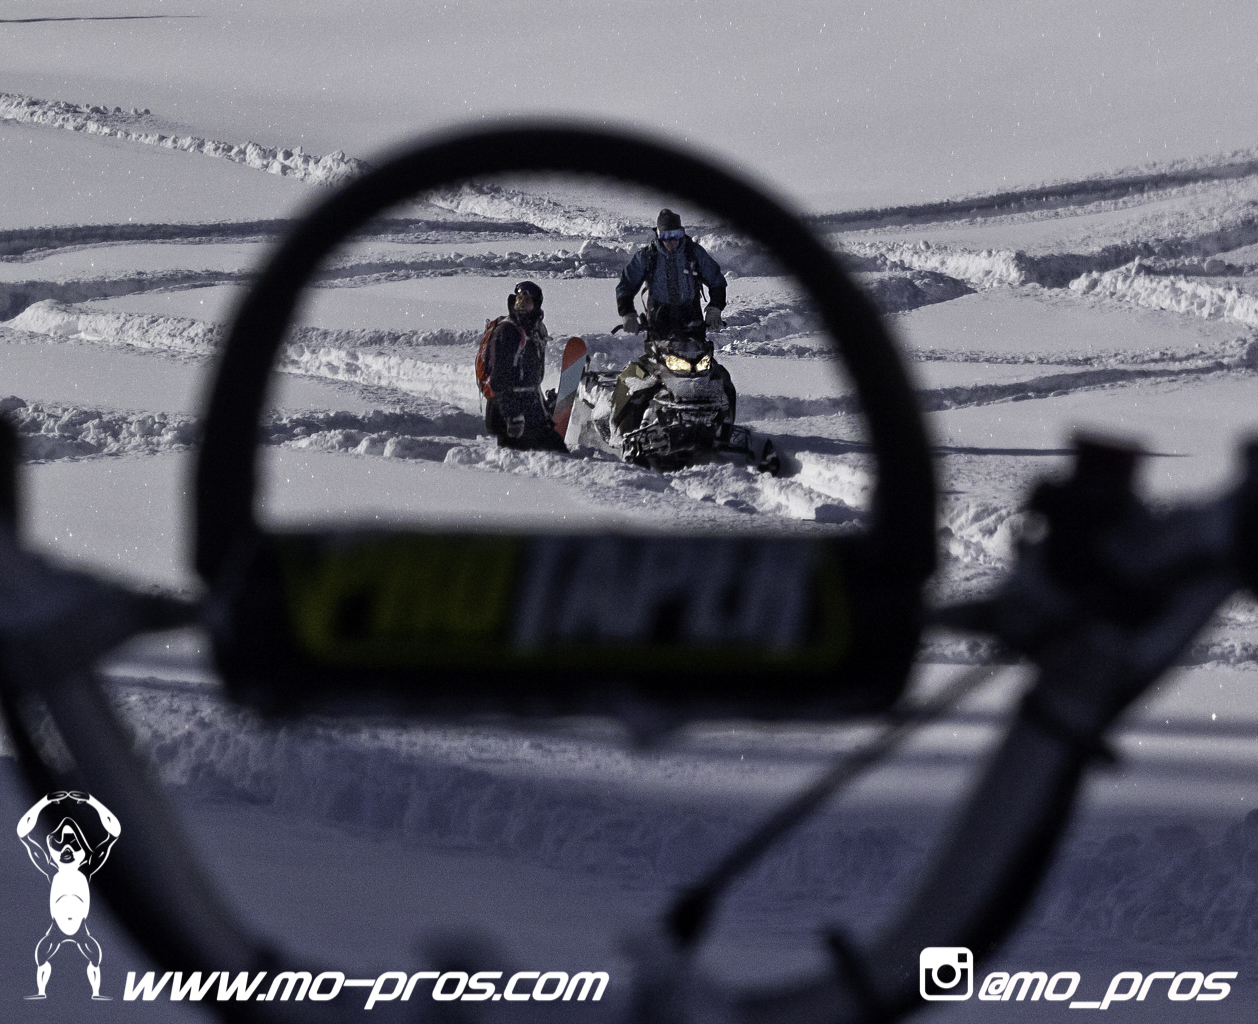 3_Backcountry _Backcountry United_CFR rack_Cheetah Factory Racing_gas Rack_Gear_Gun Rack_LinQ Snowboard Ski_Snowboard rack_snowboard_Snowboarding_snowmobile bag_Snowmobile_timbersled bag_Timbersled r.jpg